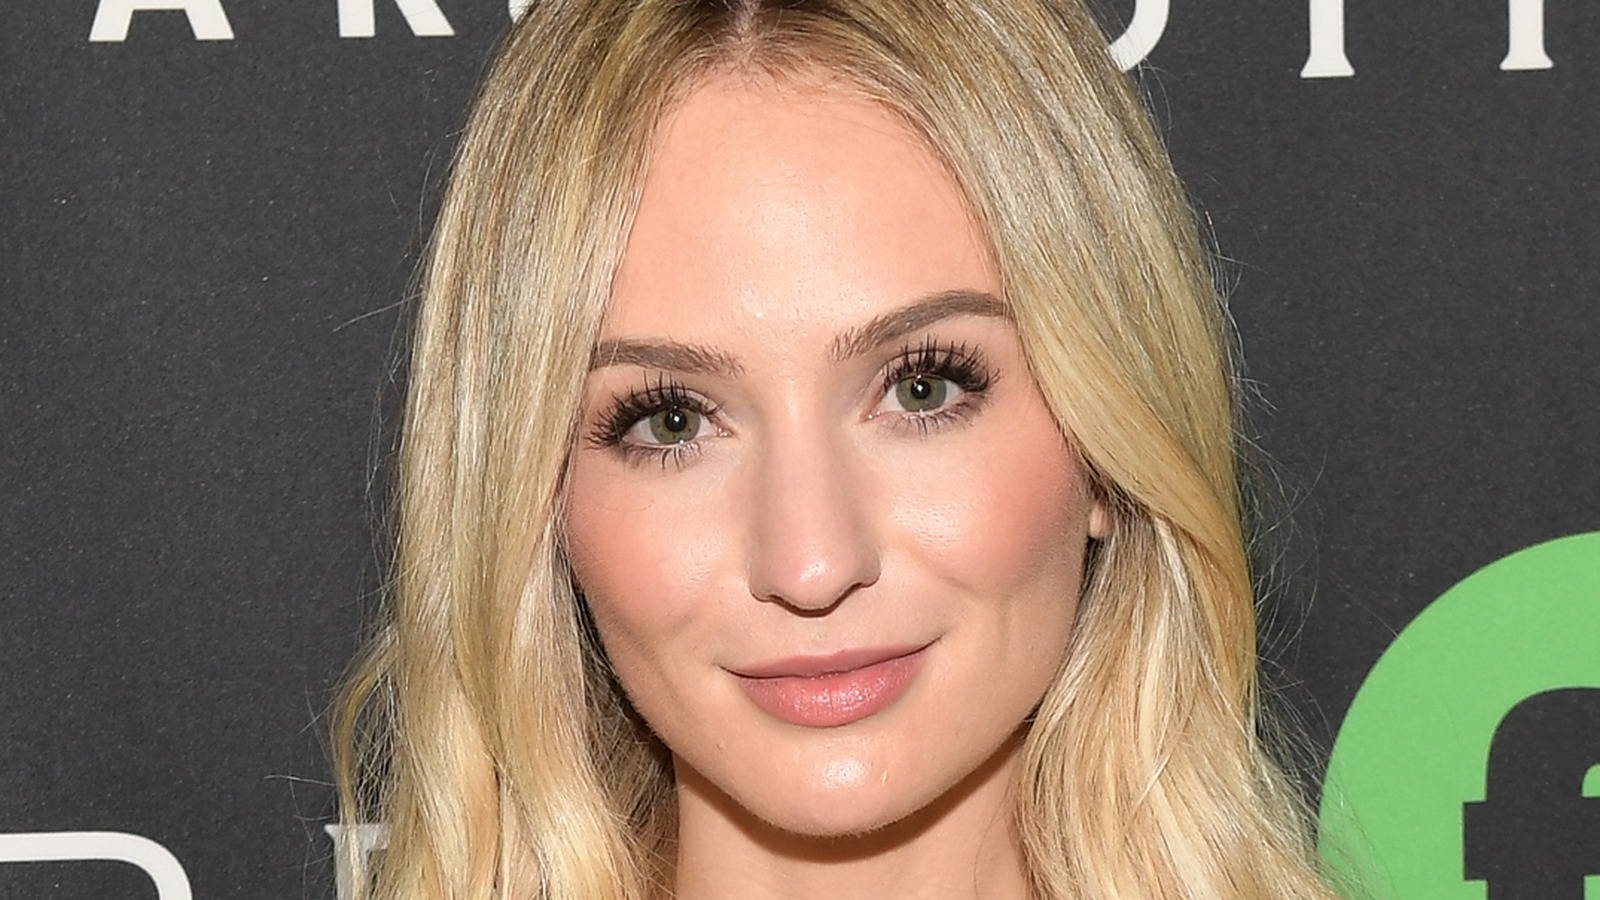 Lauren Bushnell Reveals The Plastic Surgery She's Had On Her Face.jpg